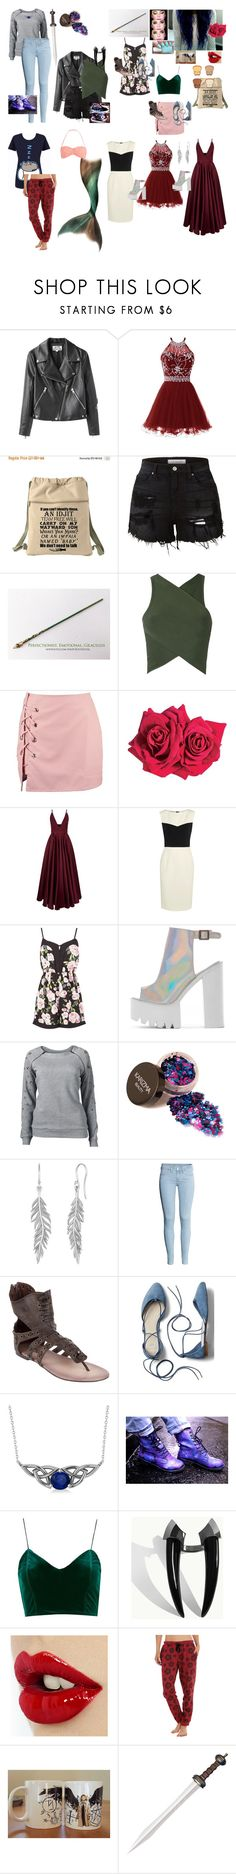 """""""Item 12 of collections"""" by haileyscomet95 ❤ liked on Polyvore featuring Acne Studios, LE3NO, EGREY, Boohoo, Avon, La Mania, Narciso Rodriguez, Venus, Pusheen and Pieces"""